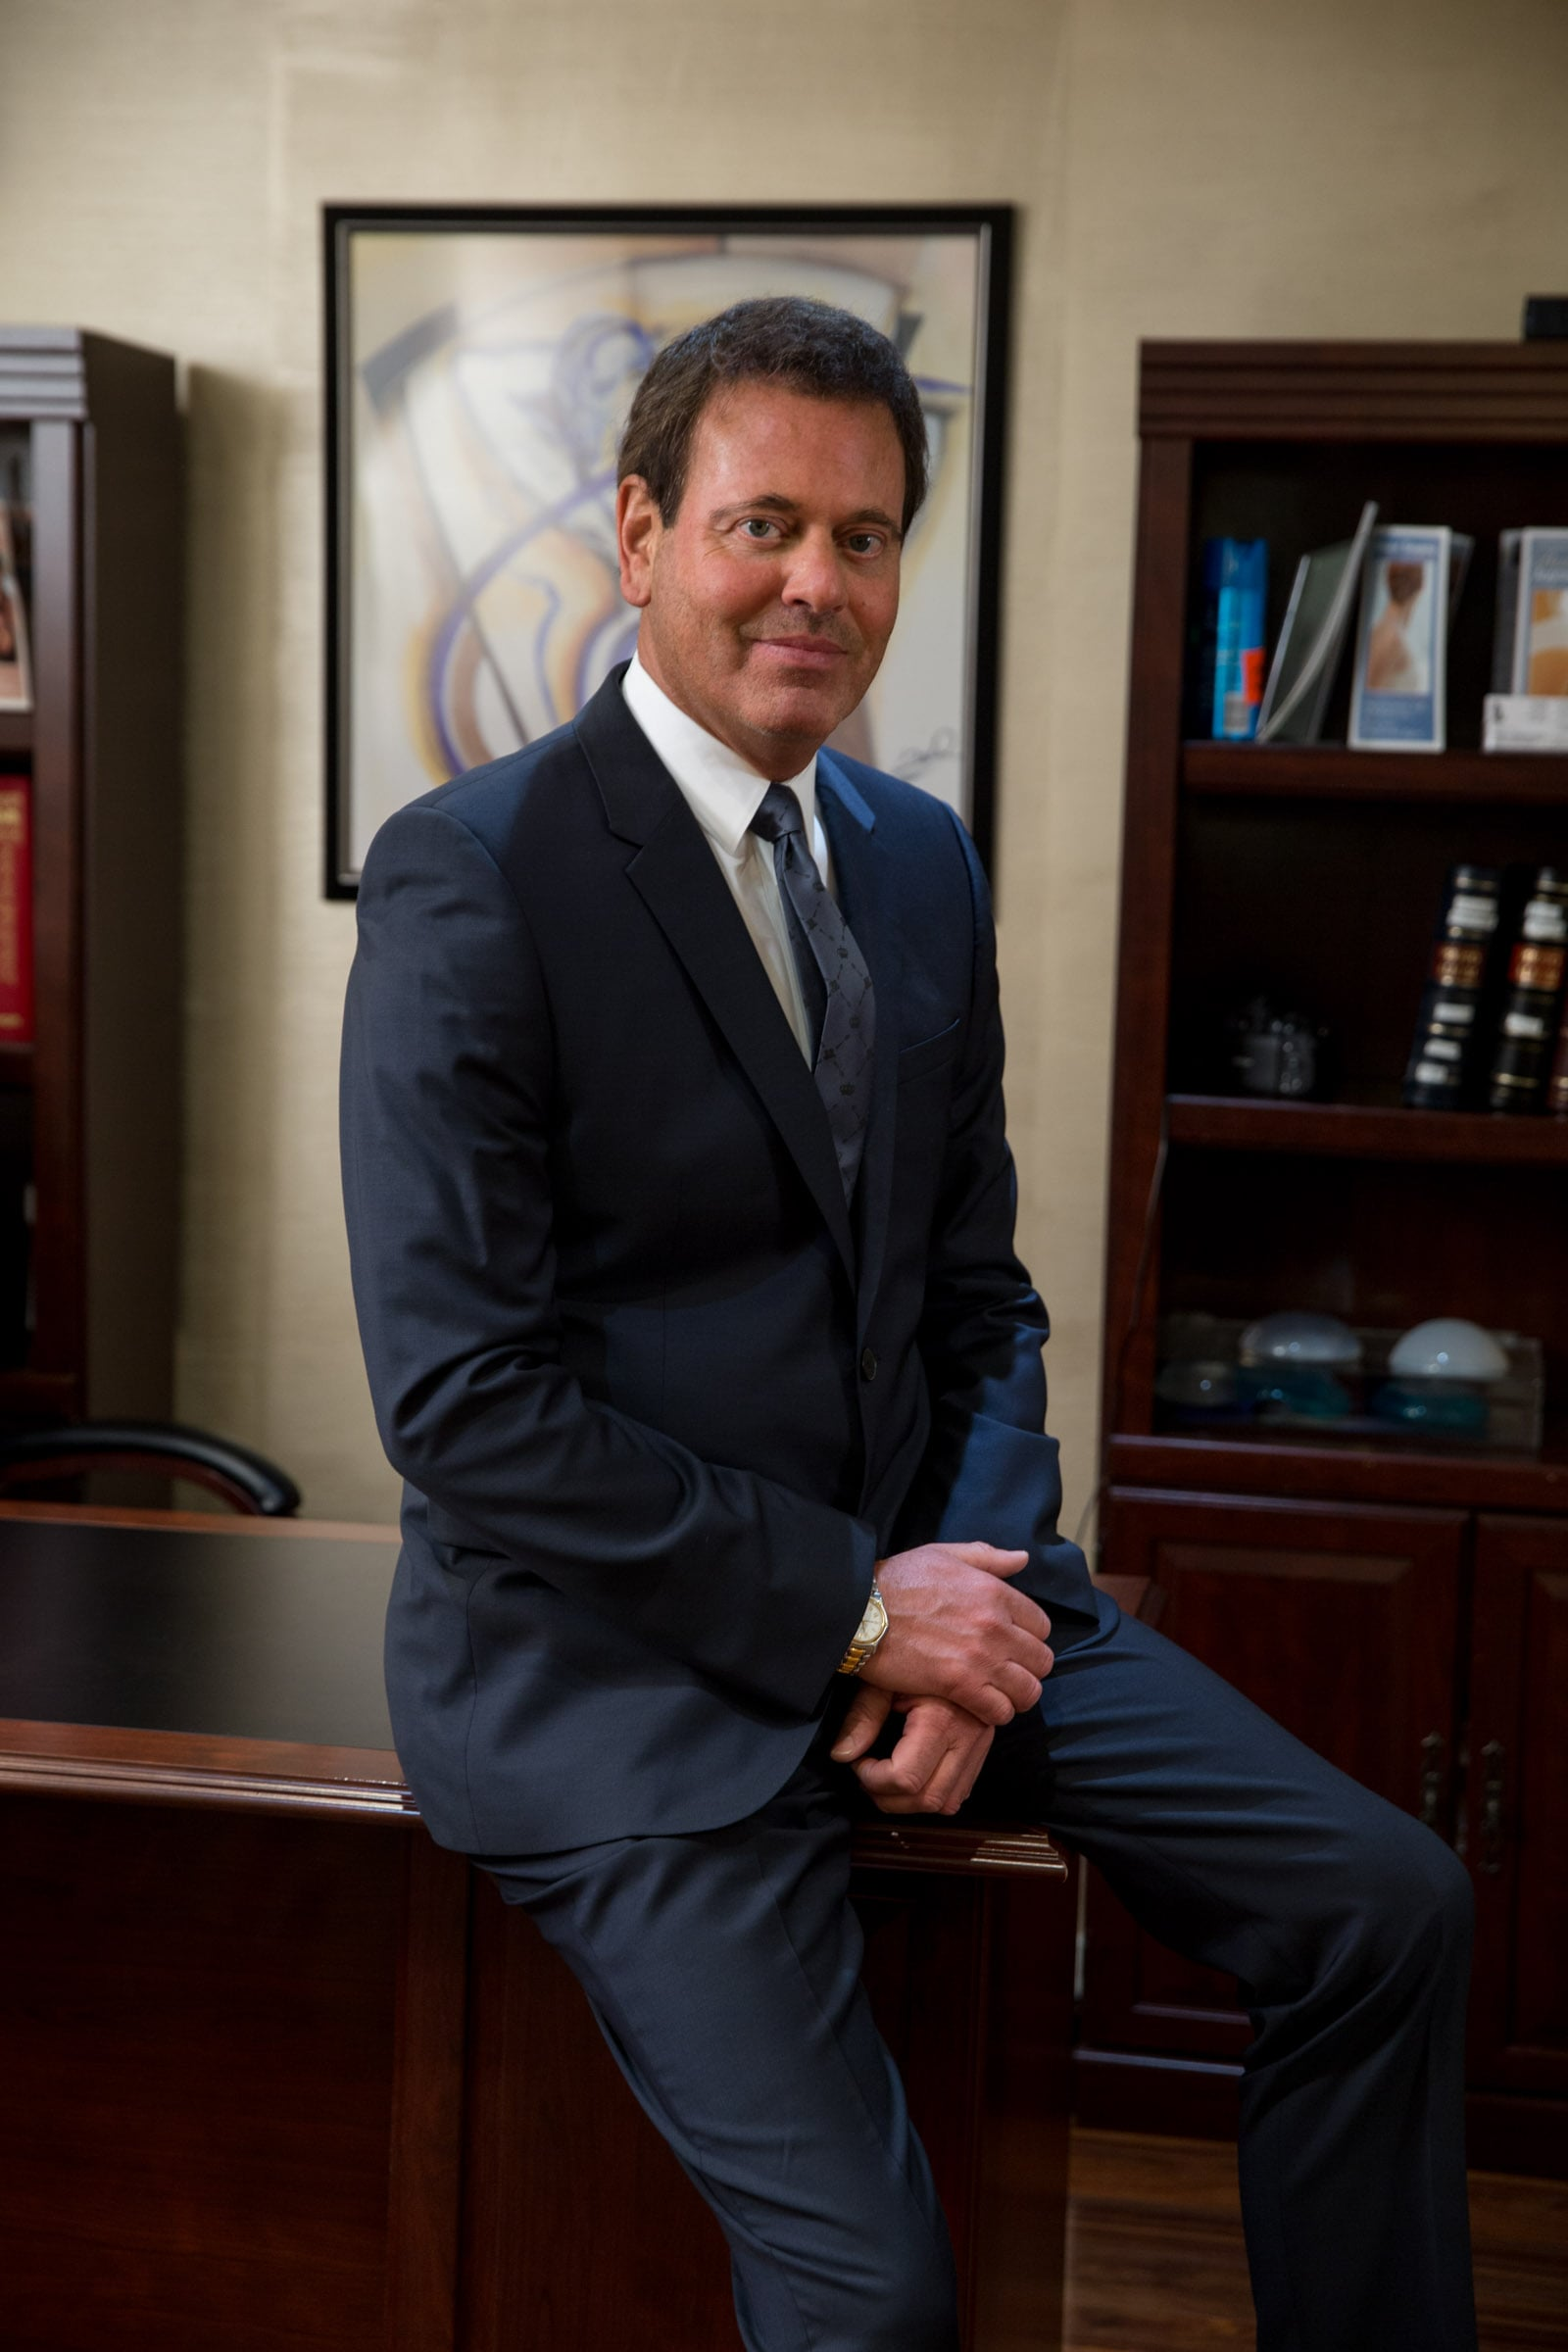 Dr. Elliot Heller, Penis Enlargement Surgeon in New York Area